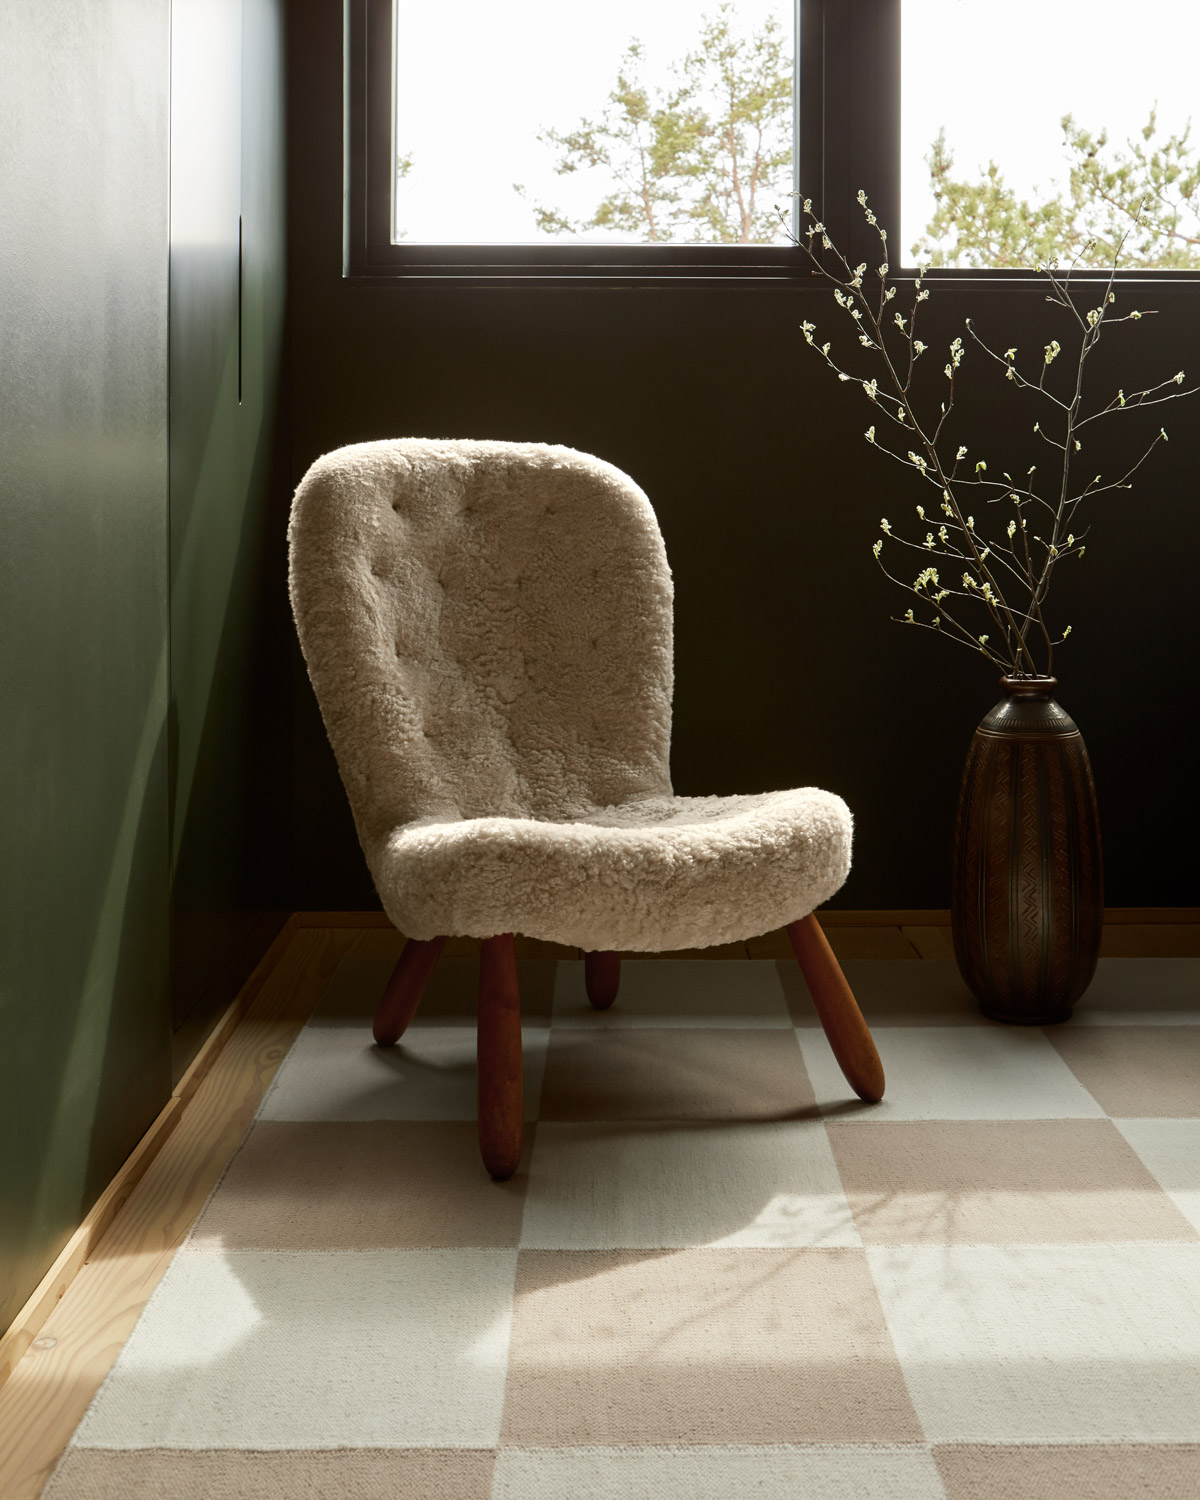 The Square sand flatweave rug photographed with a beautiful white chair.